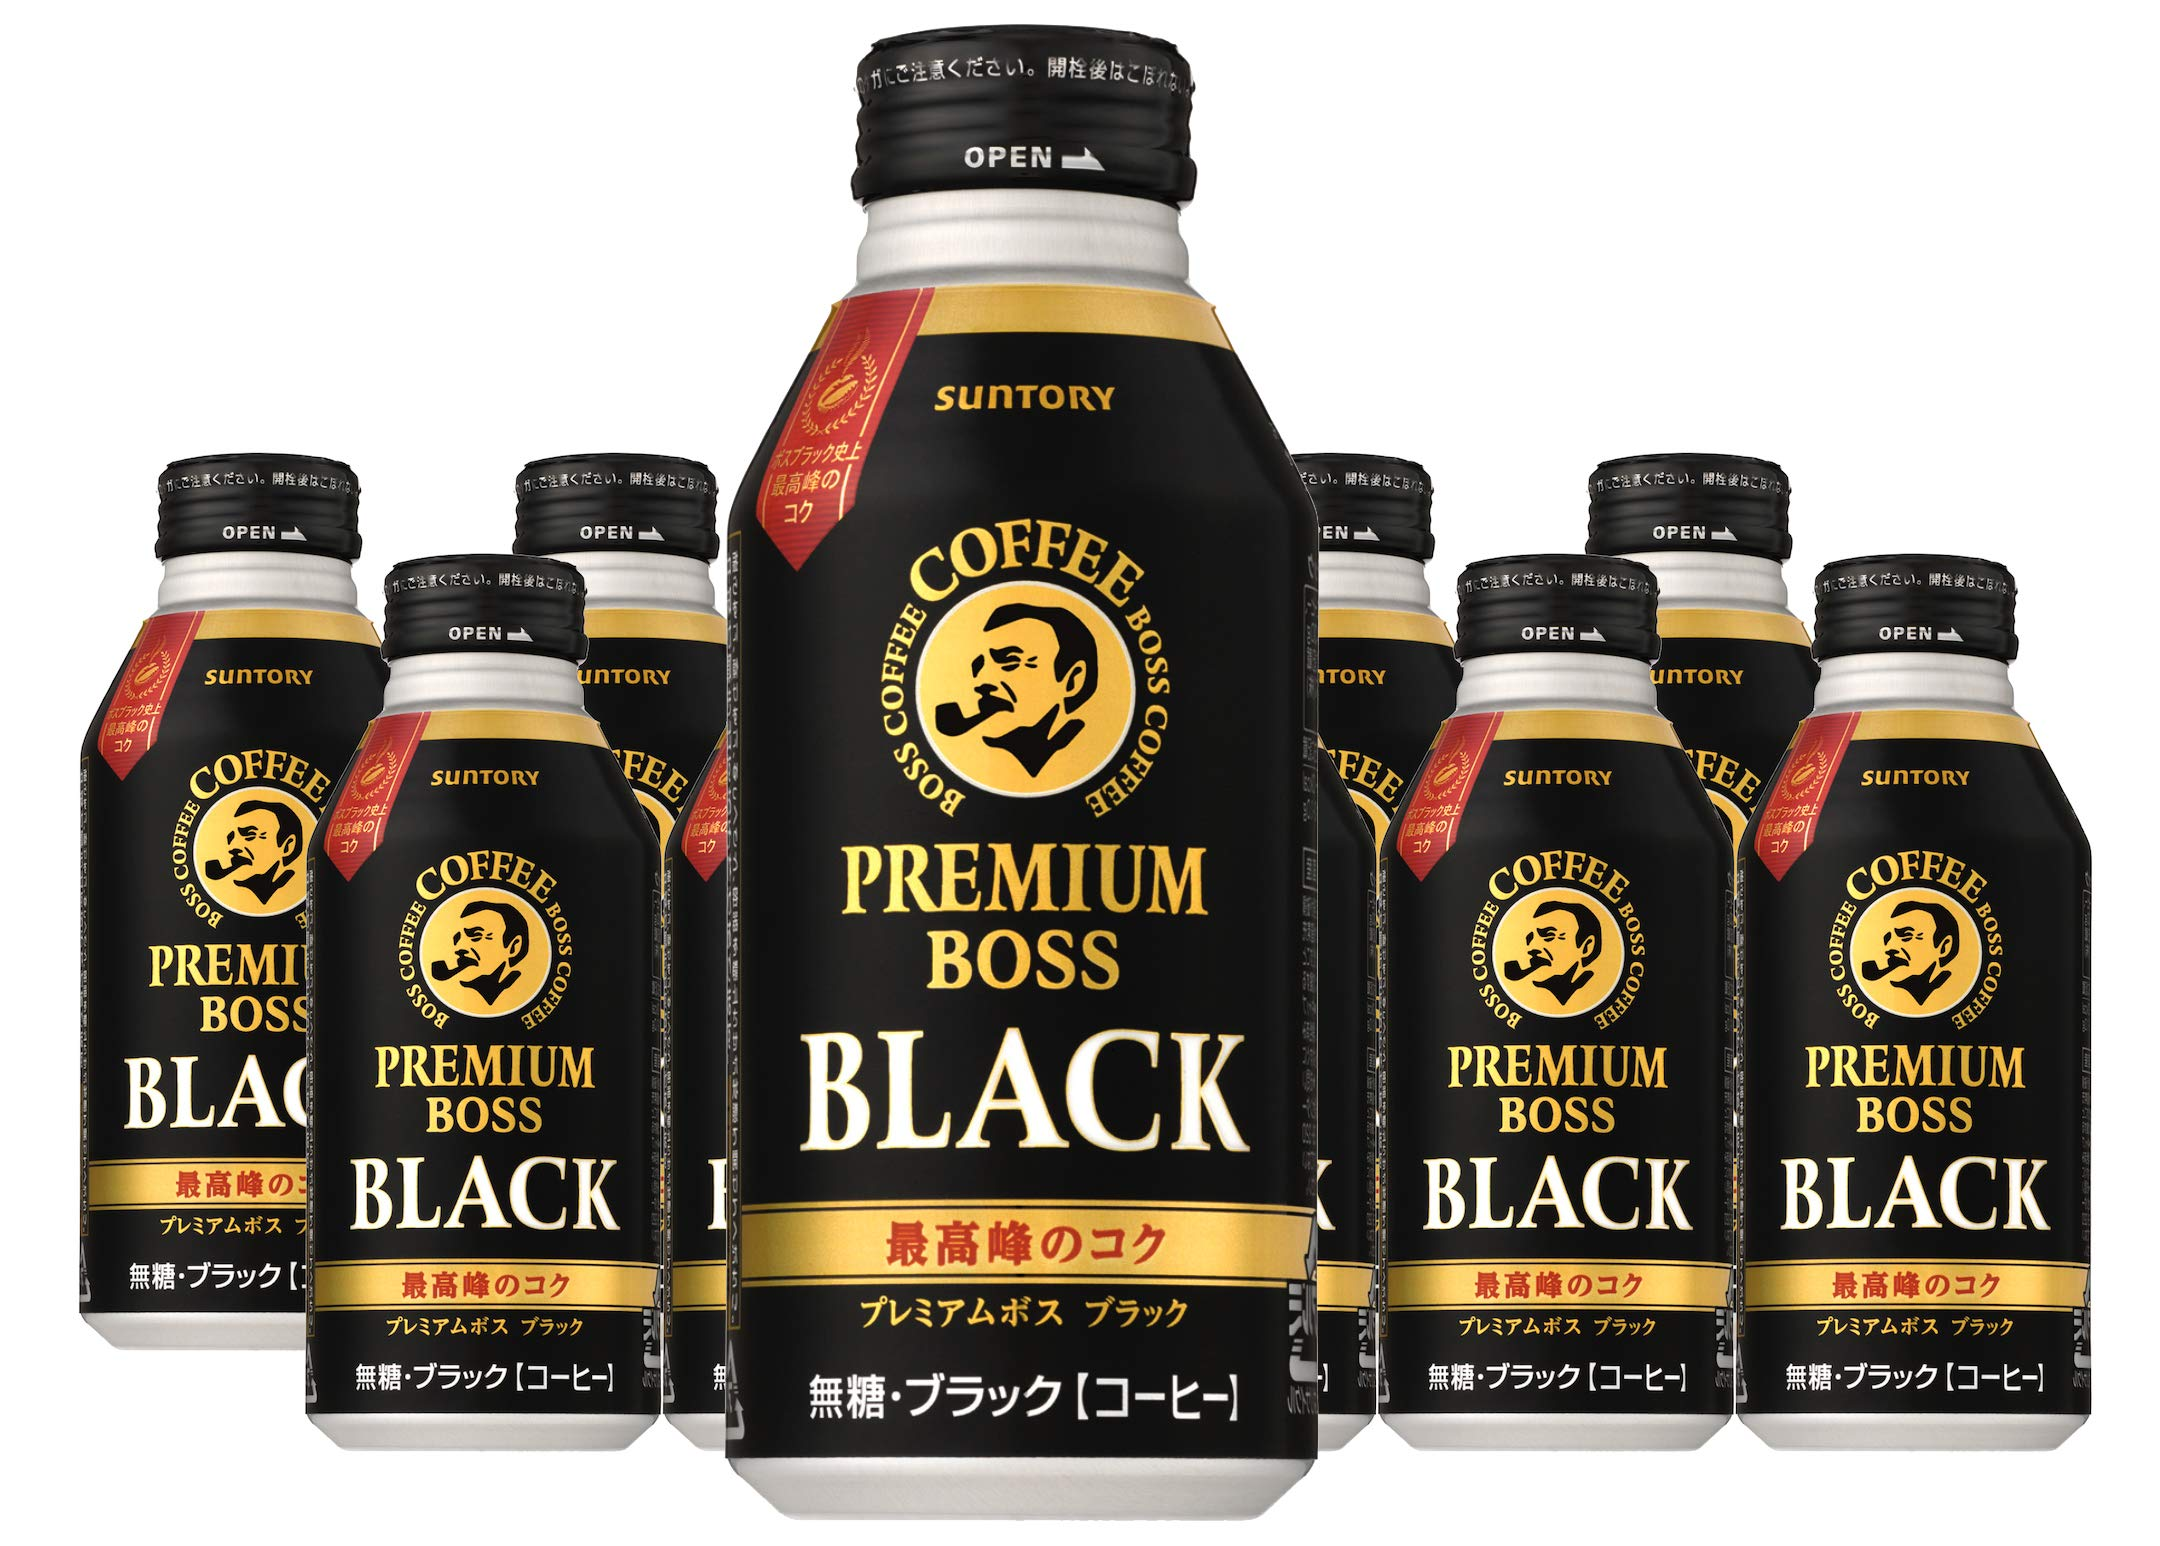 Suntory Premium Boss Black Coffee (Japan Import), Ready to Drink, Zero Calorie & Sugar Free - 13.18 Fl Oz | Pack of 10 by Suntory